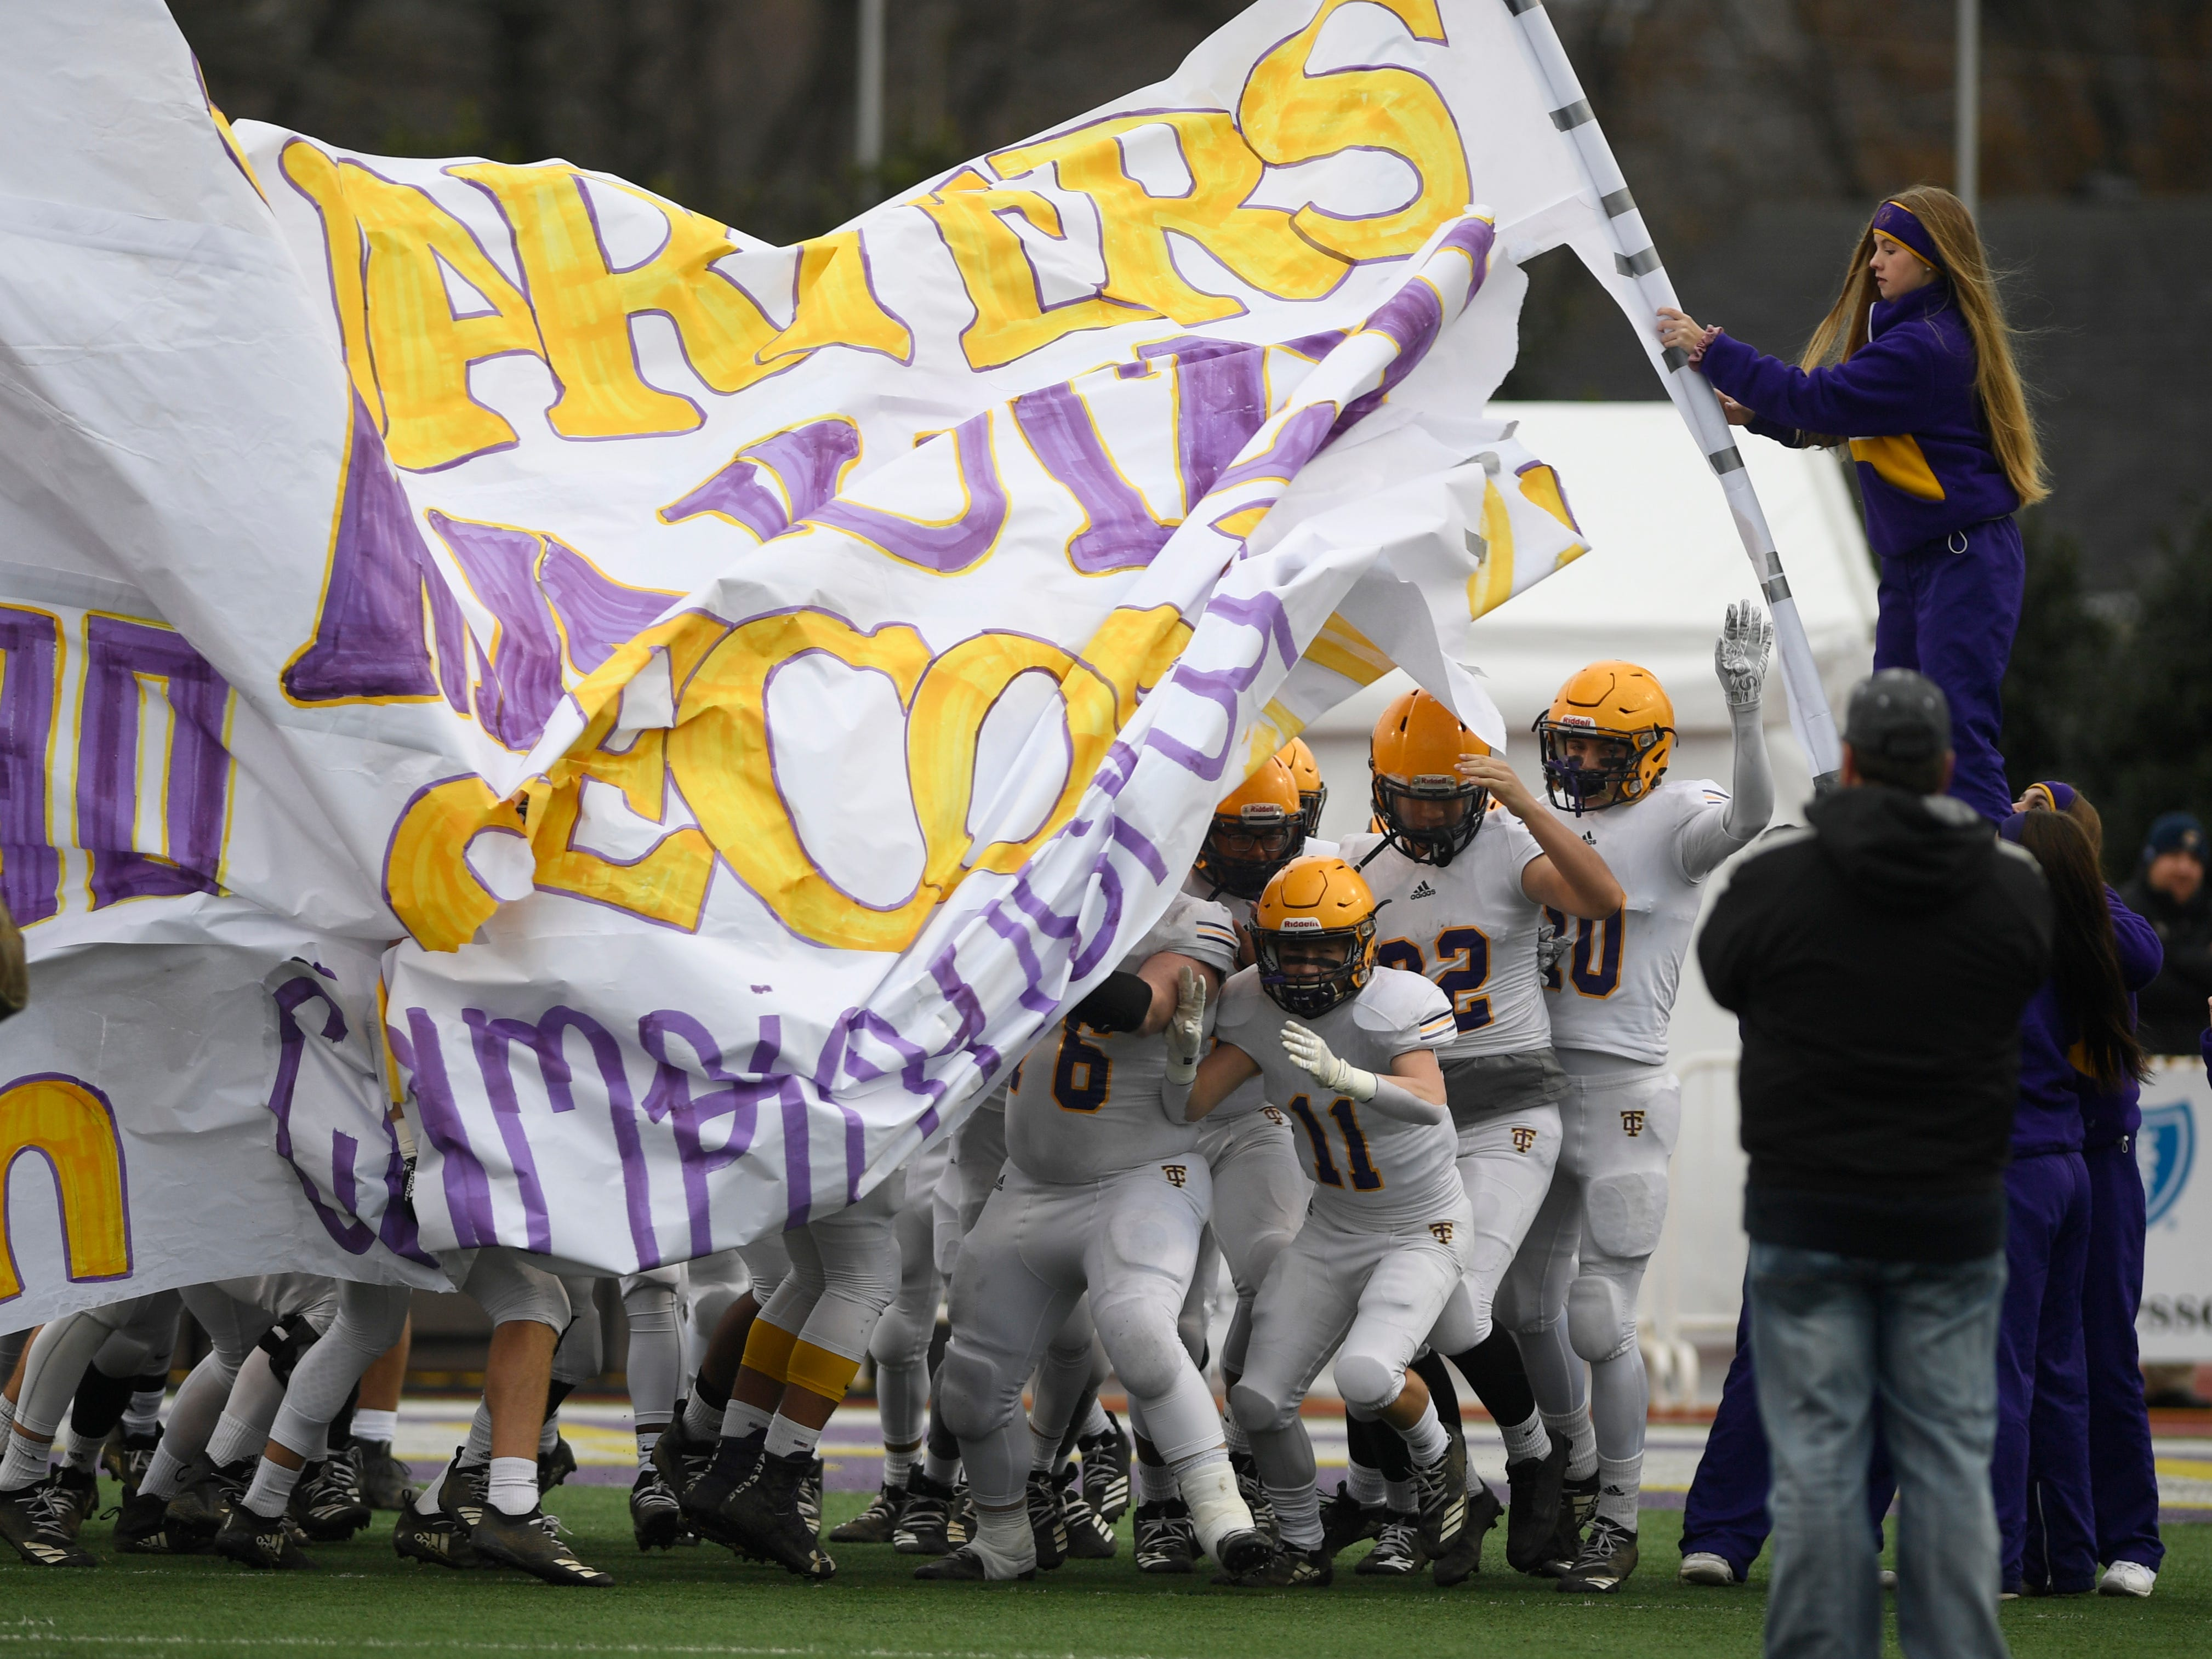 Trousdale County takes the field for the start of the Class 2A BlueCross Bowl state championship at Tennessee Tech's Tucker Stadium in Cookeville, Tenn., on Thursday, Nov. 29, 2018.